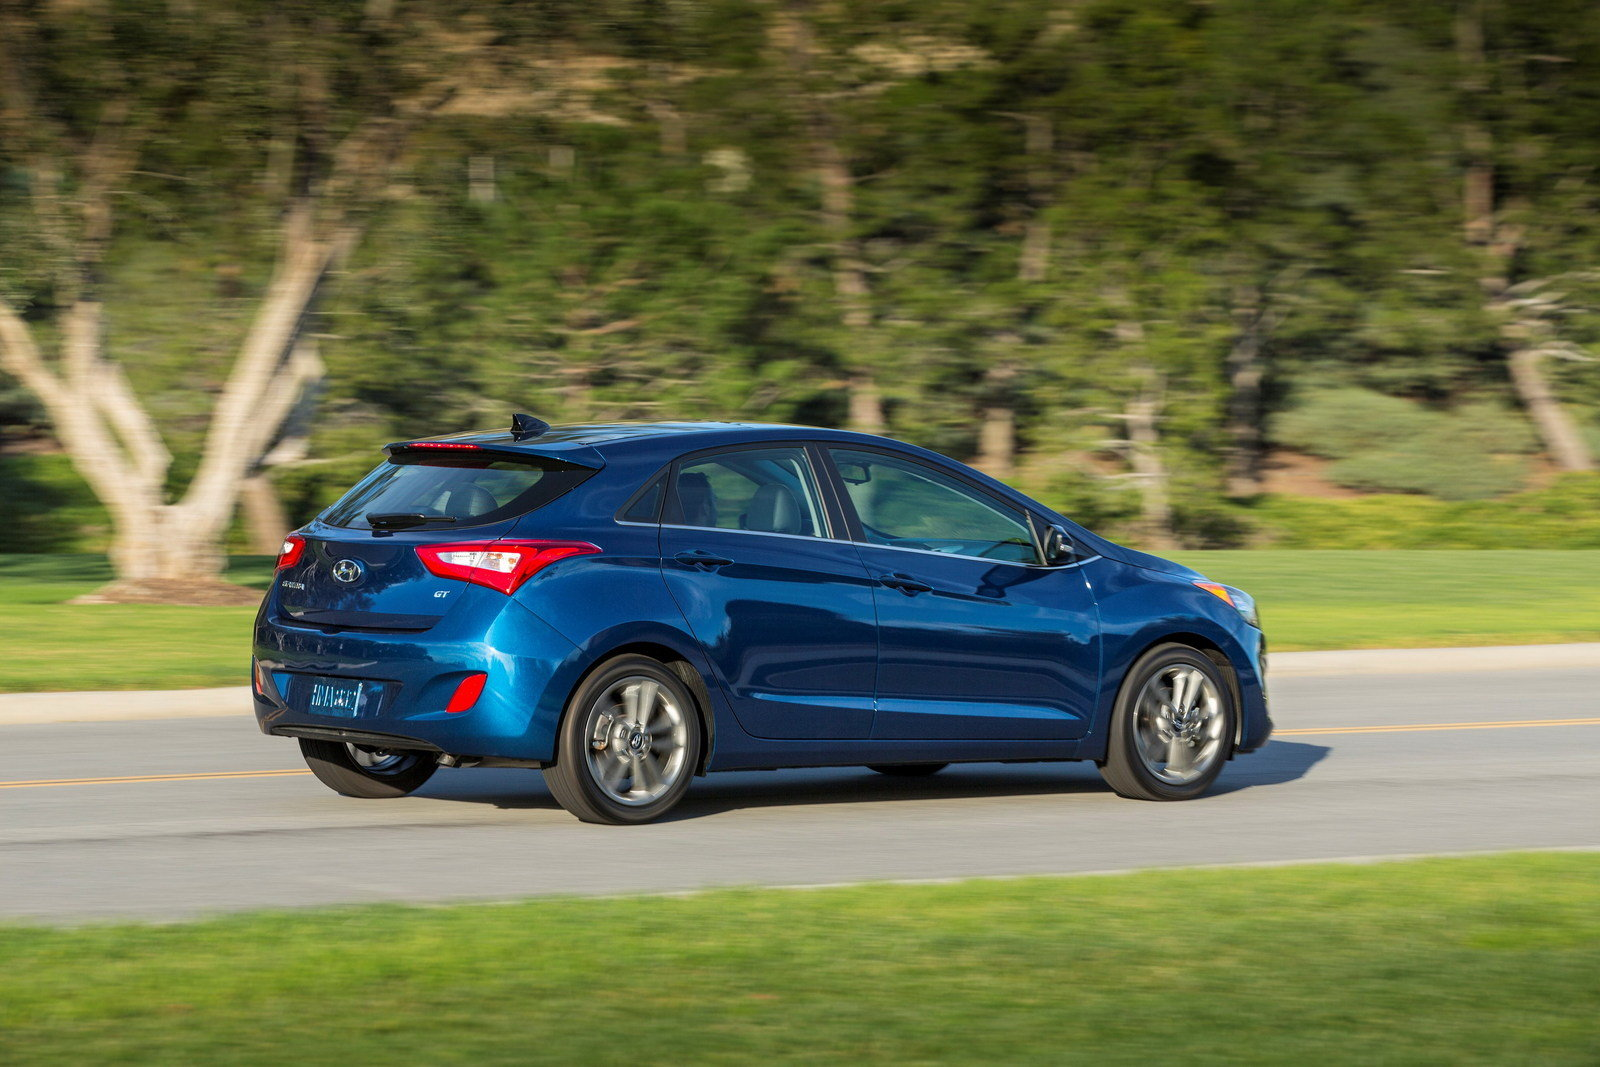 2016 hyundai elantra gt picture 617139 car review top speed. Black Bedroom Furniture Sets. Home Design Ideas